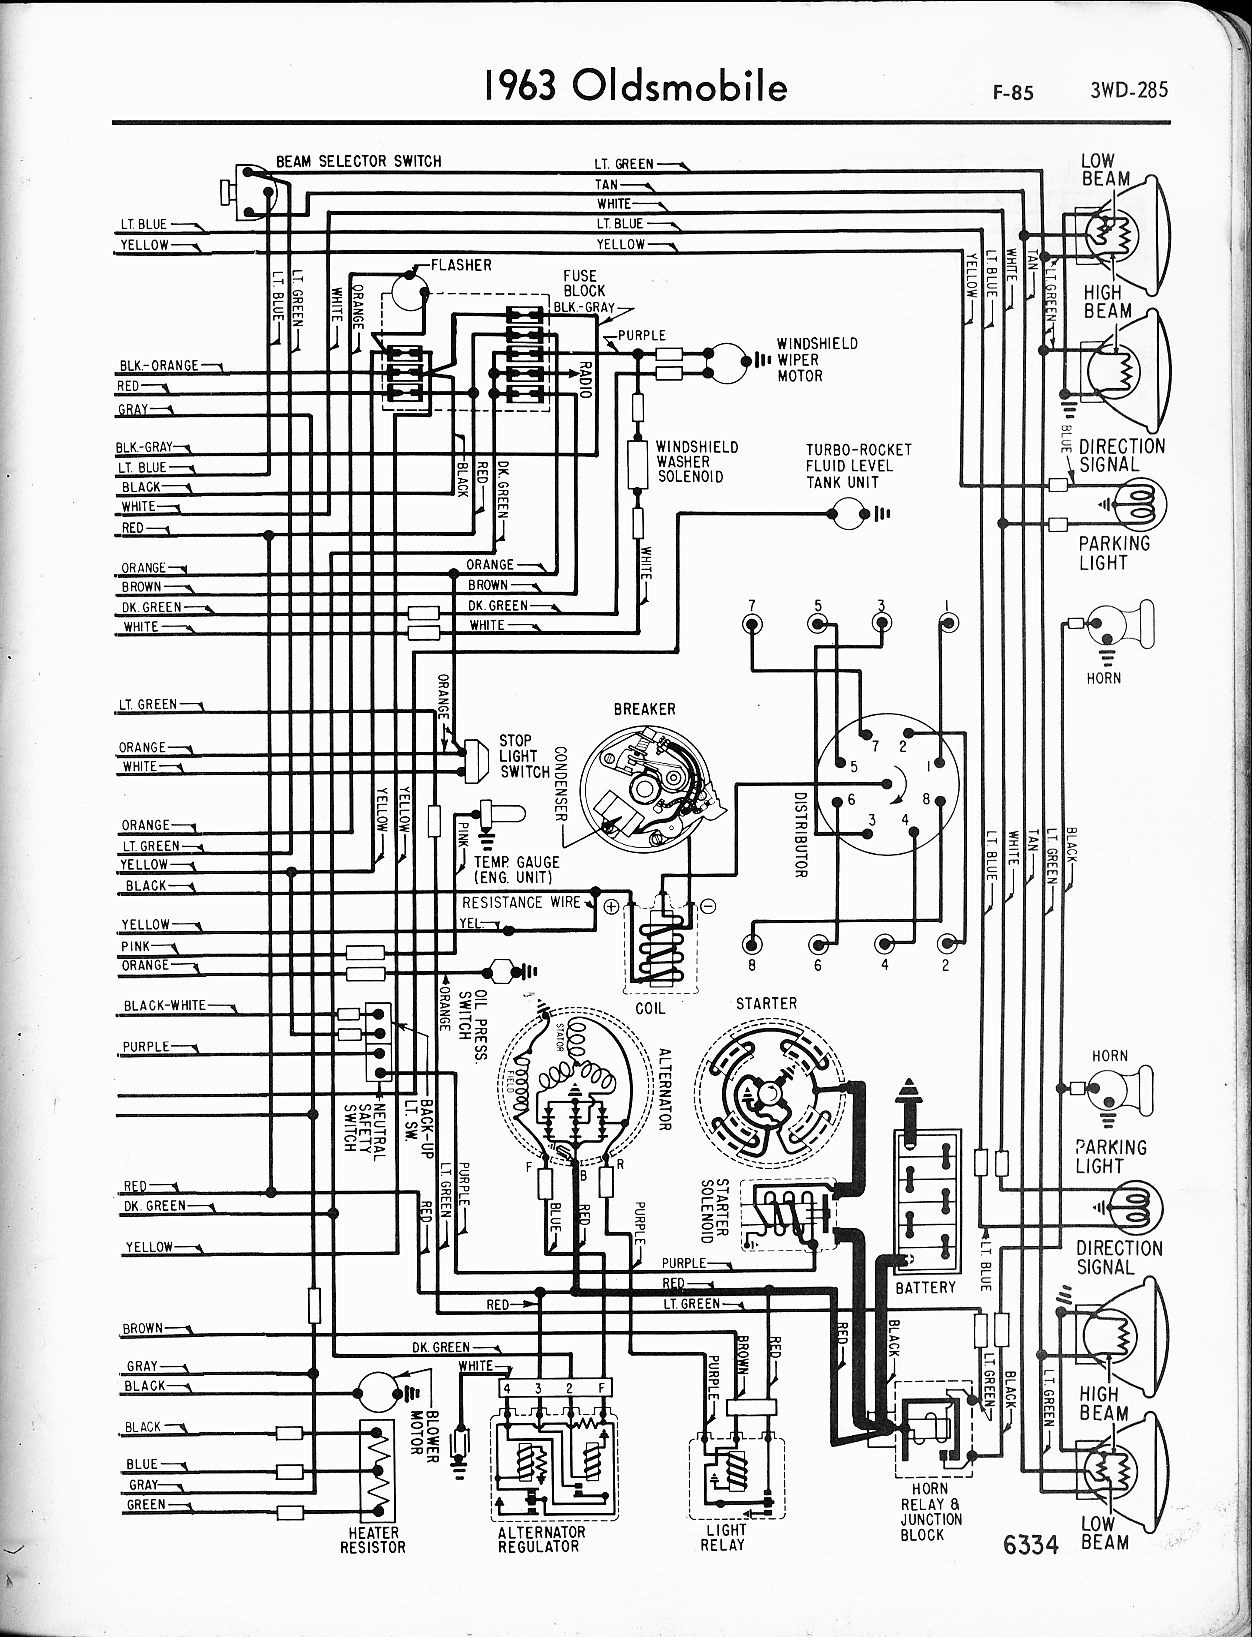 [ZTBE_9966]  Wiring Diagram 96 Oldsmobile 88 Diagram Base Website Oldsmobile 88 -  TIKZVENNDIAGRAM.ATTENTIALLUOMO.IT | Wiring Diagram Oldsmobile 88 |  | Diagram Base Website Full Edition - attentialluomo